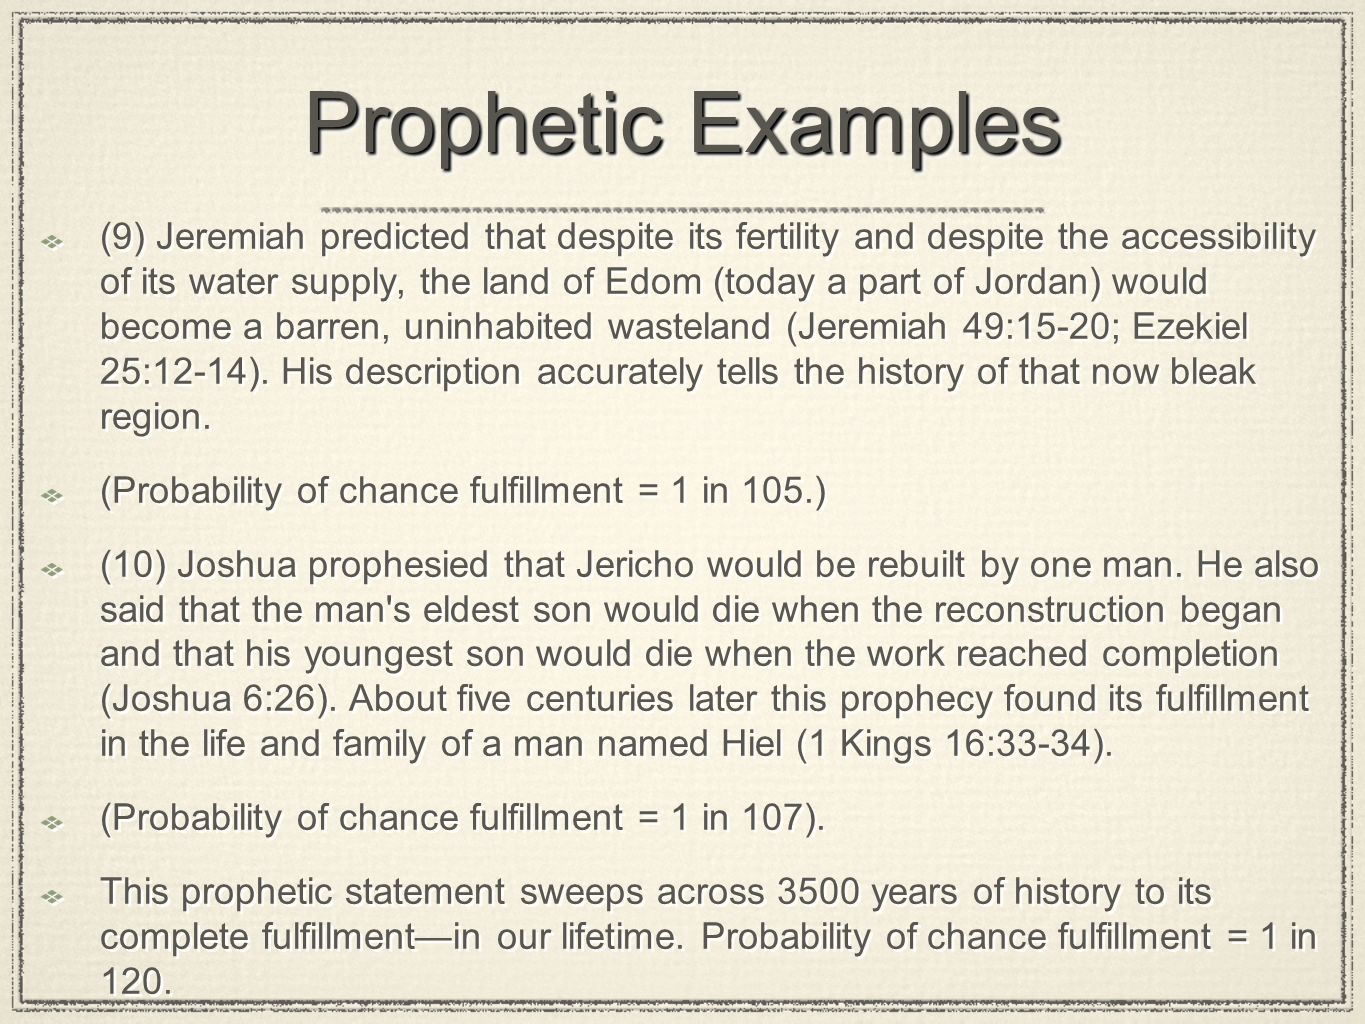 Prophetic Examples (9) Jeremiah predicted that despite its fertility and despite the accessibility of its water supply, the land of Edom (today a part